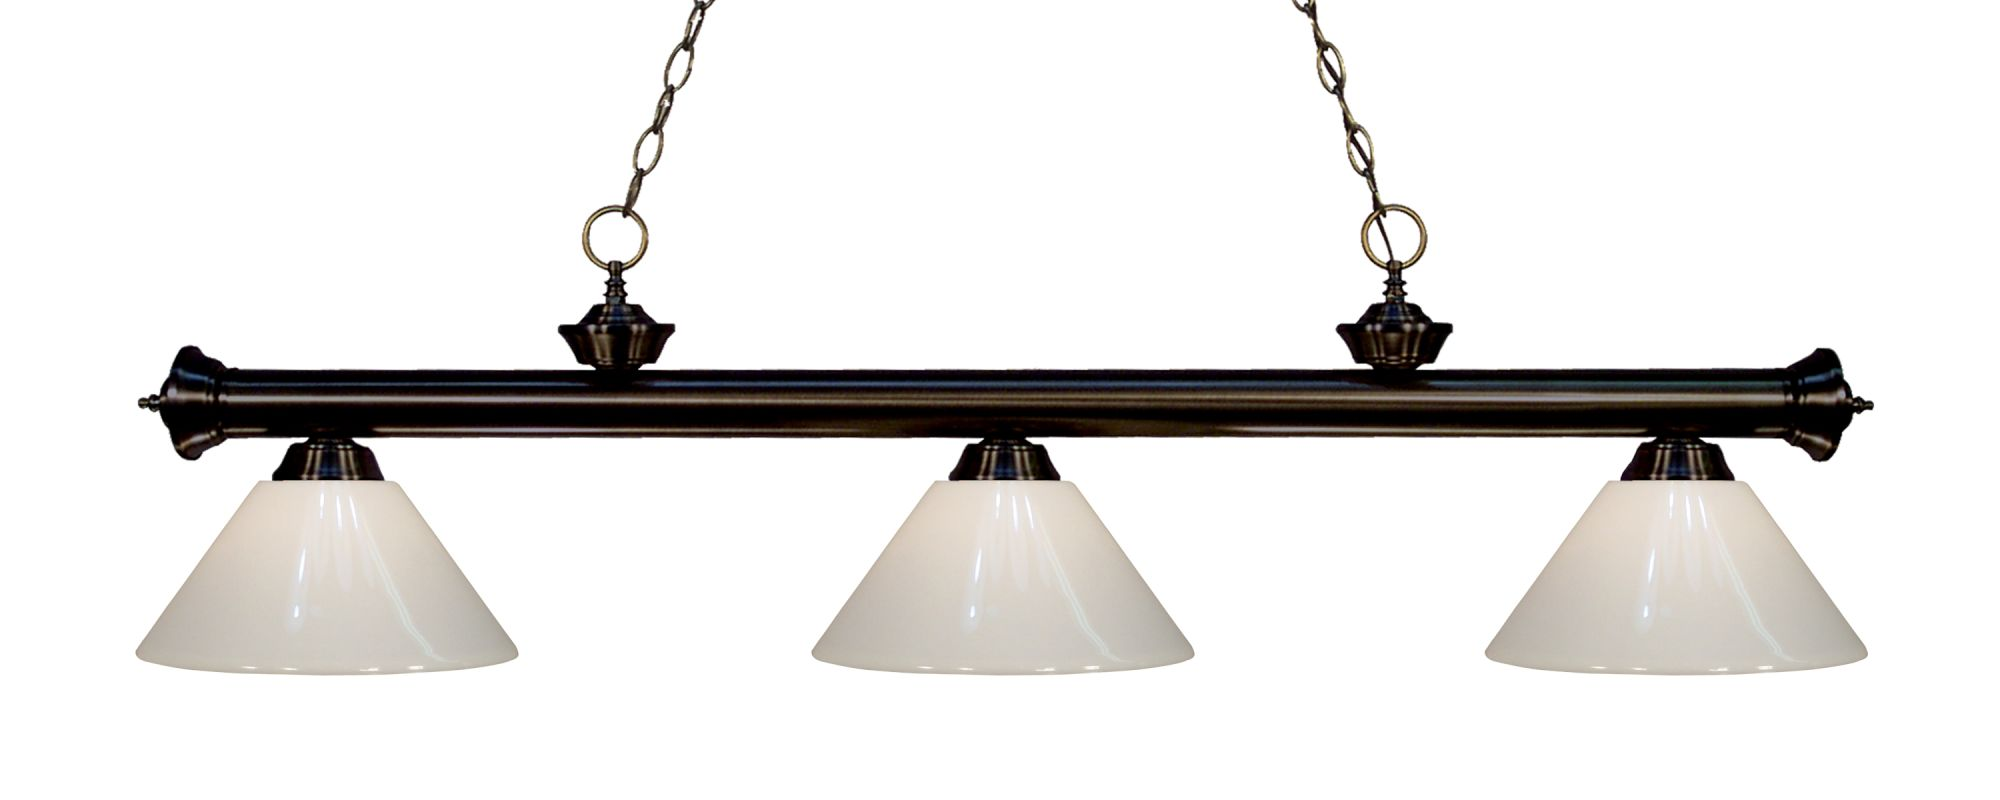 Z-Lite 200-3-PWH Riviera 3 Light Island/Billiard Chandelier with White Sale $242.00 ITEM: bci2566338 ID#:200-3BRZ-PWH UPC: 685659043747 :